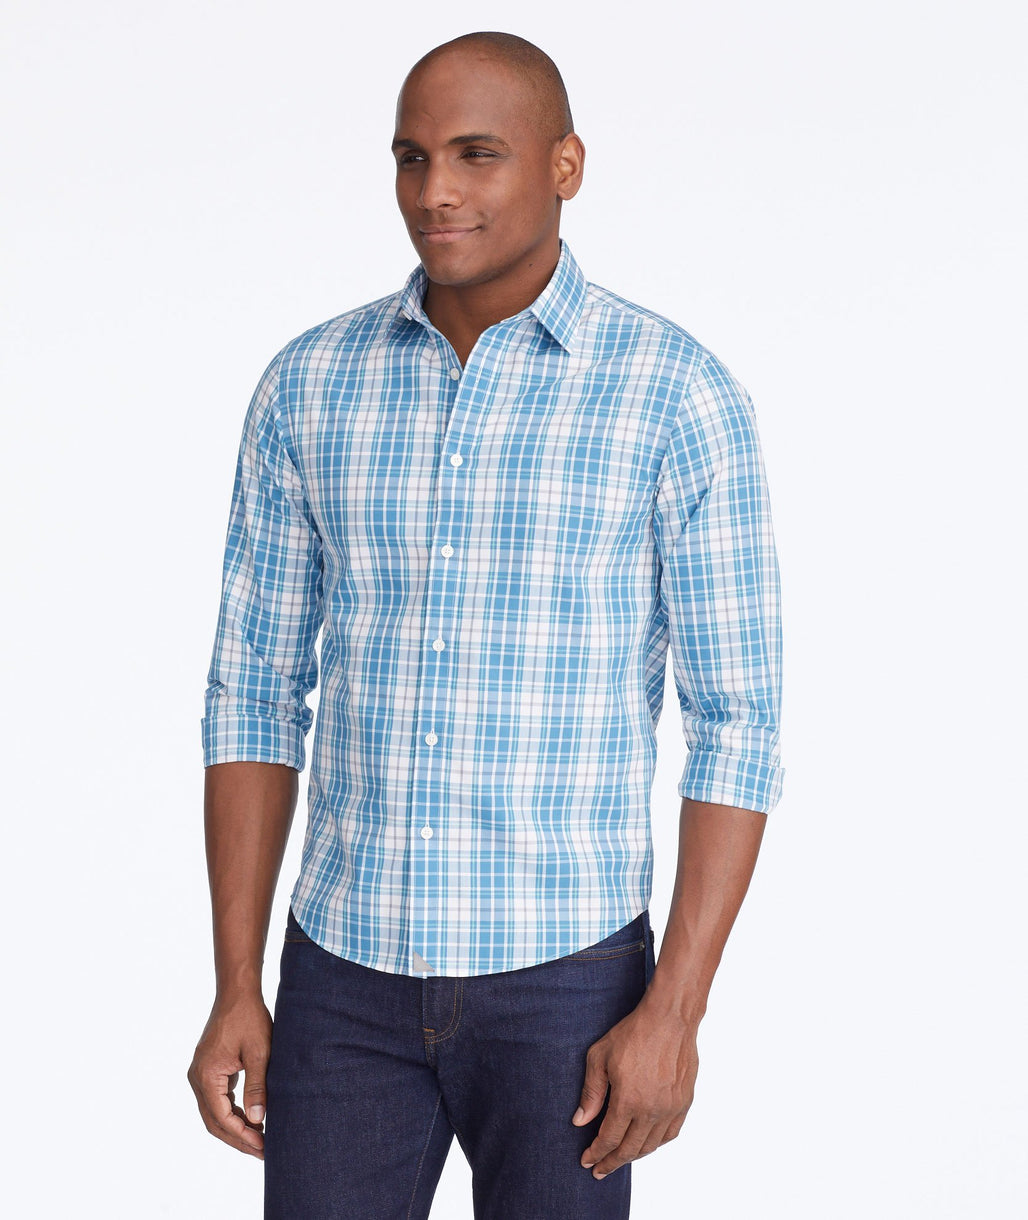 Model wearing a Mid Blue Wrinkle-Free Maxville Shirt